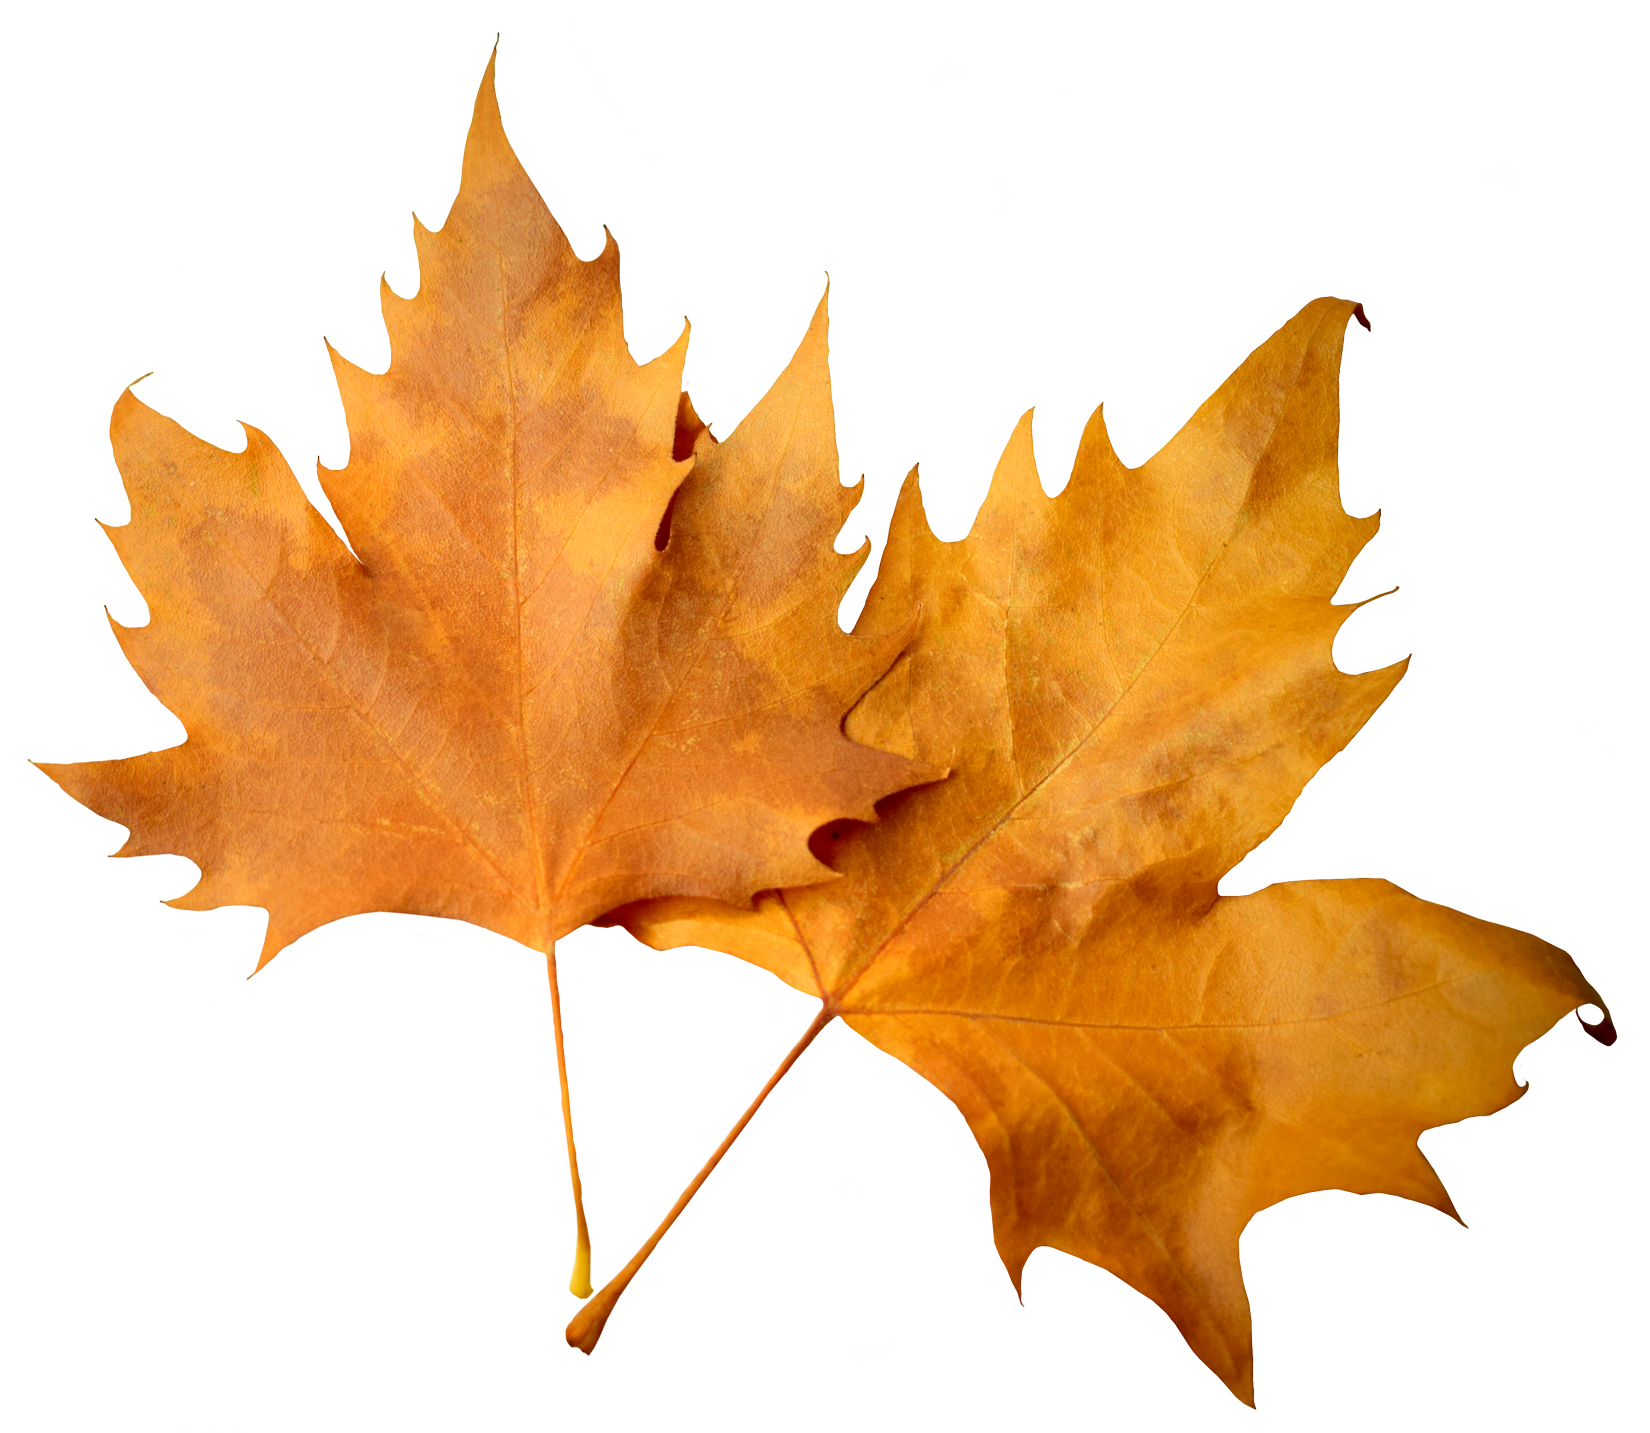 Leave falling png. Autumn leaves transparent background